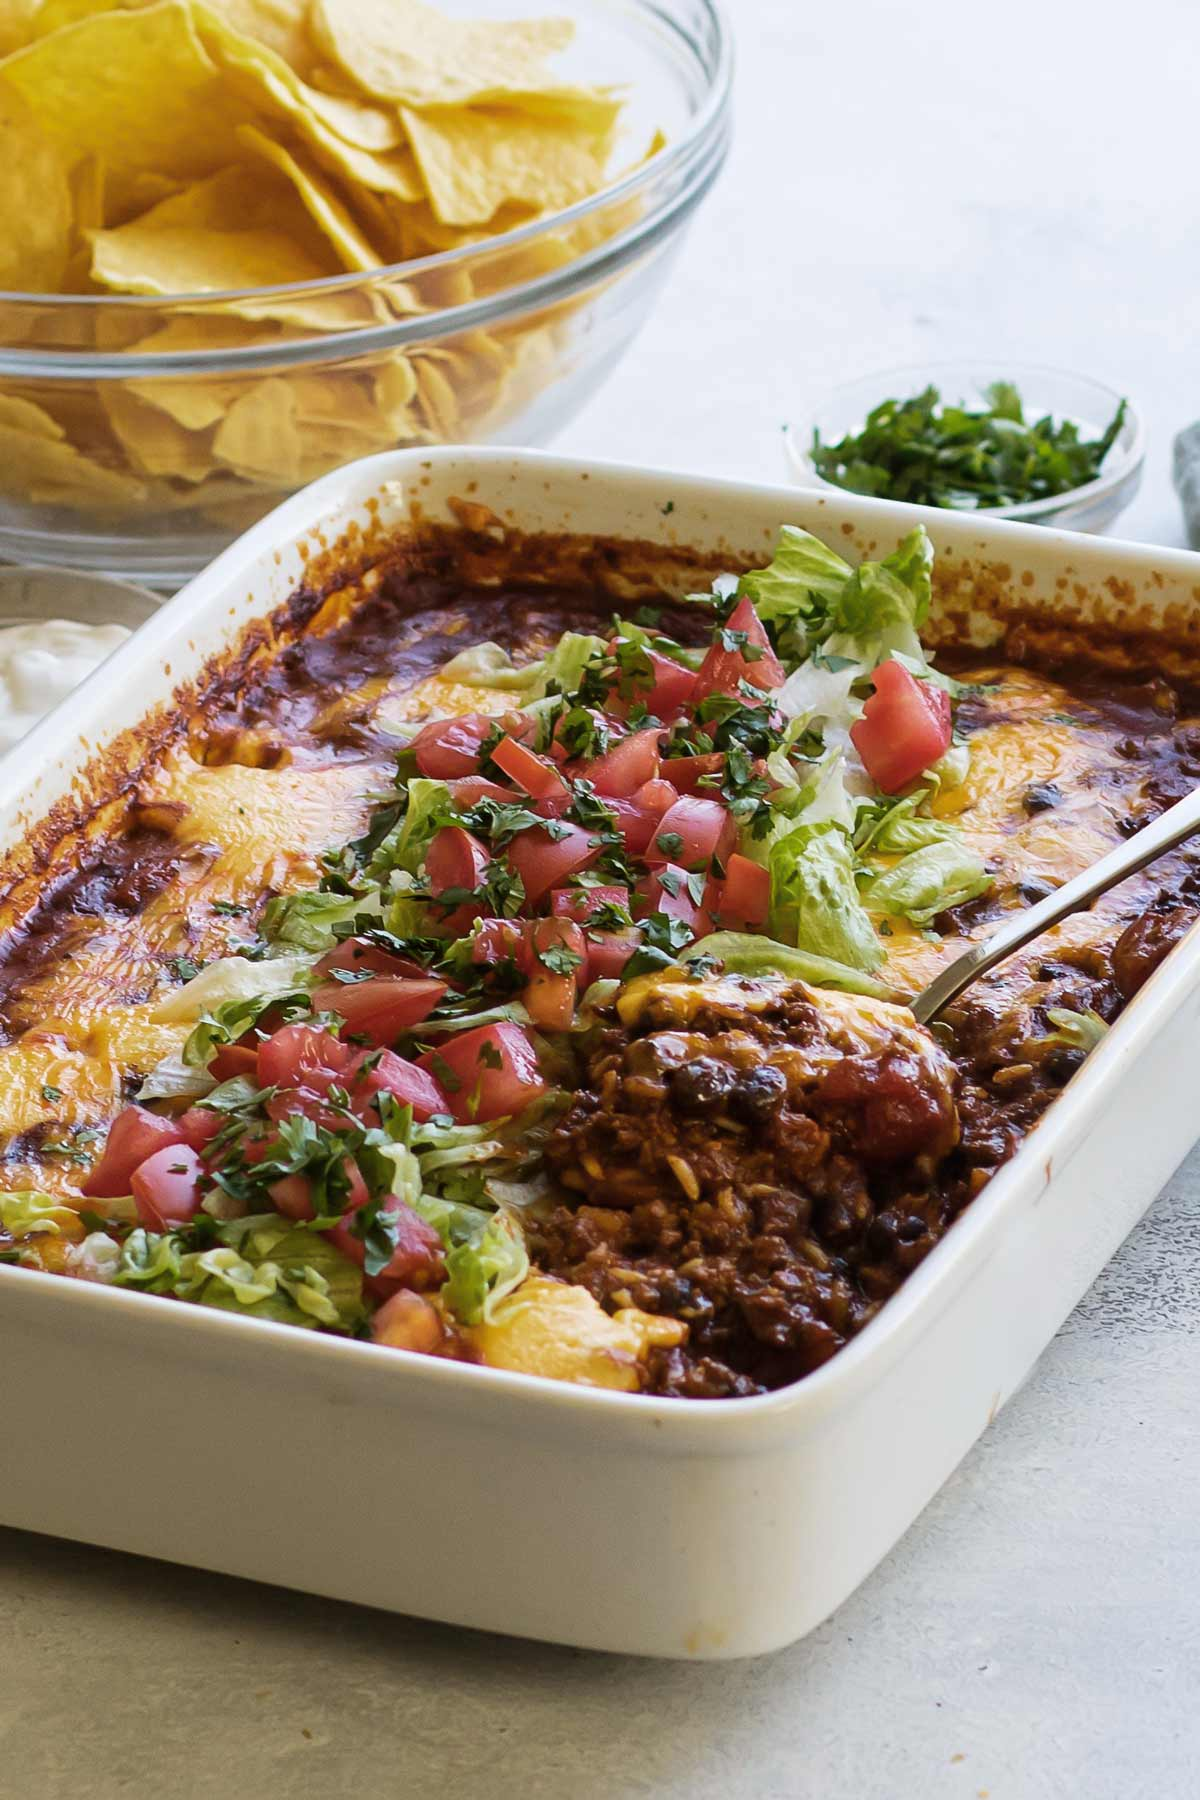 taco rice casserole with a serving spoon.